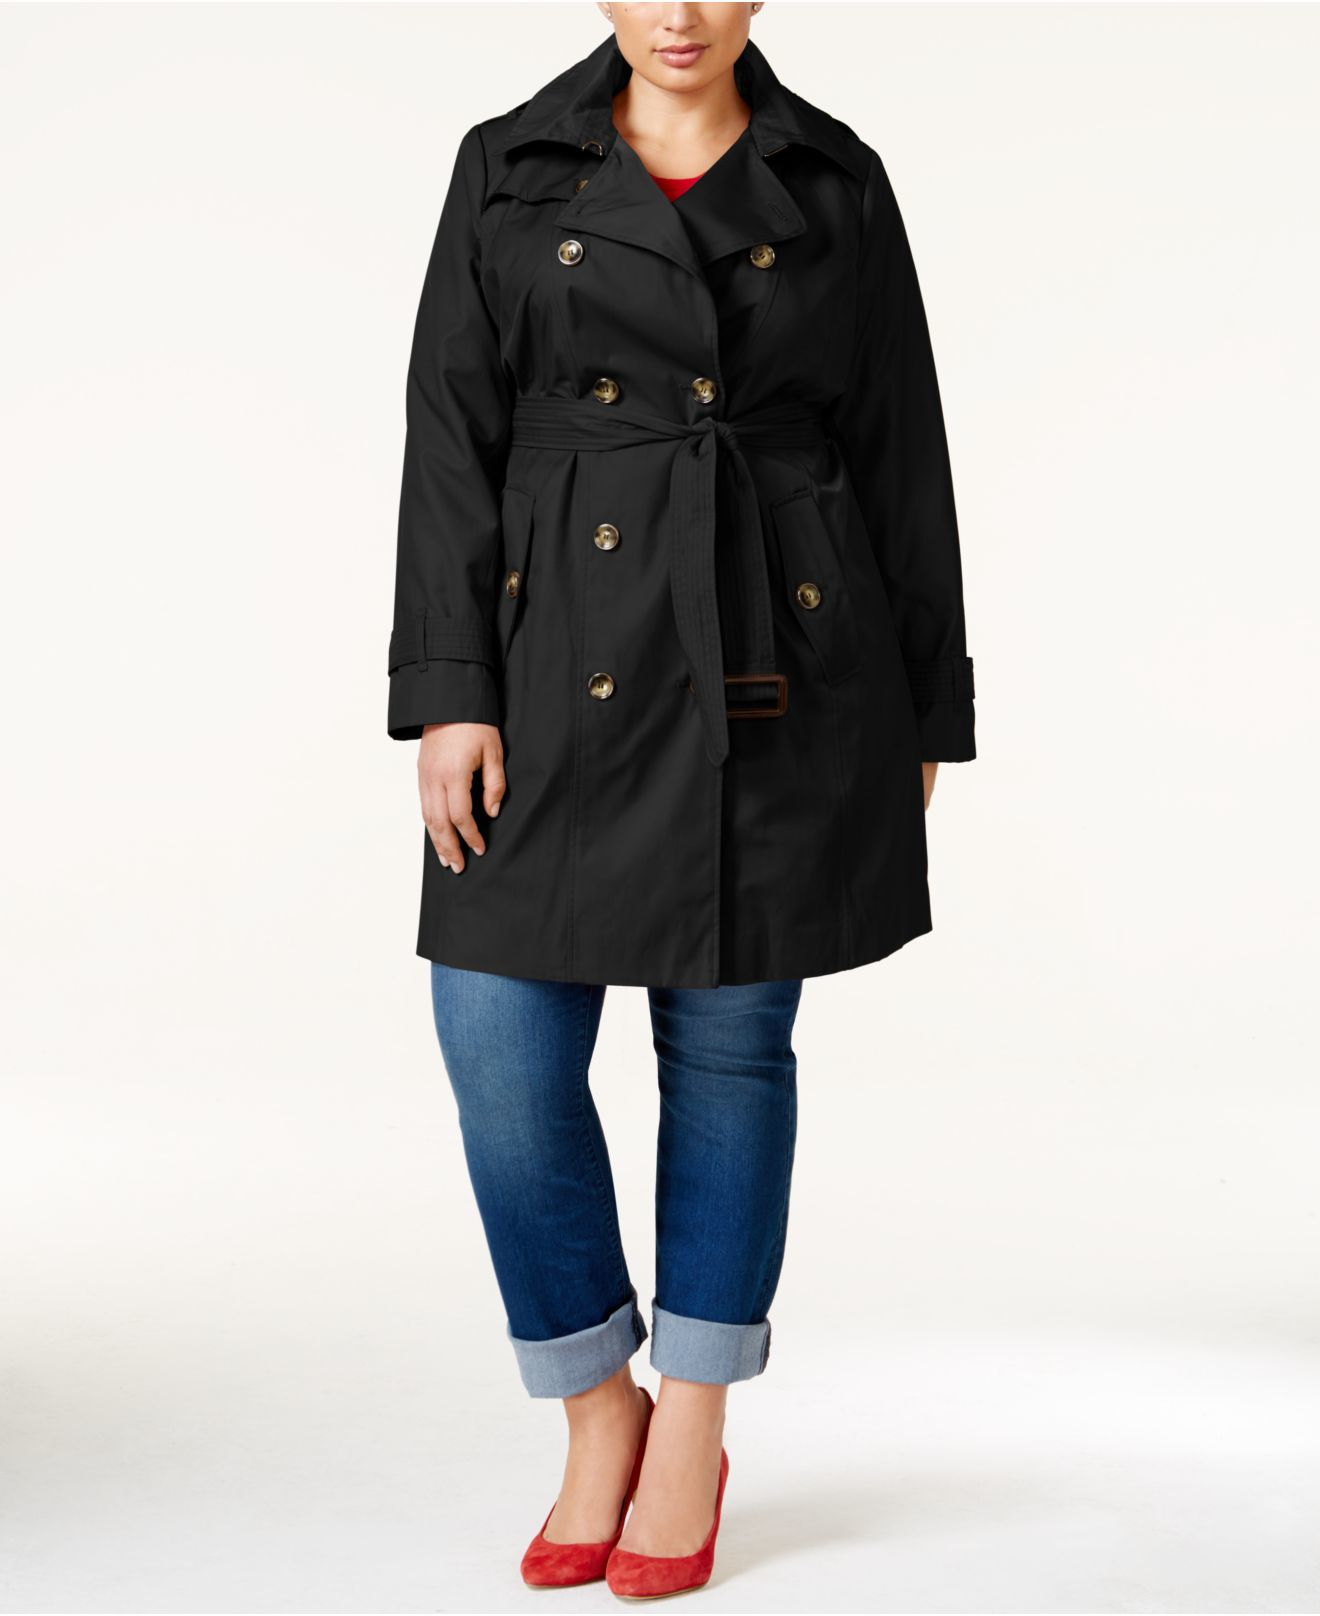 Unique Bargains - Womens Plus Size Double-Breasted Belted